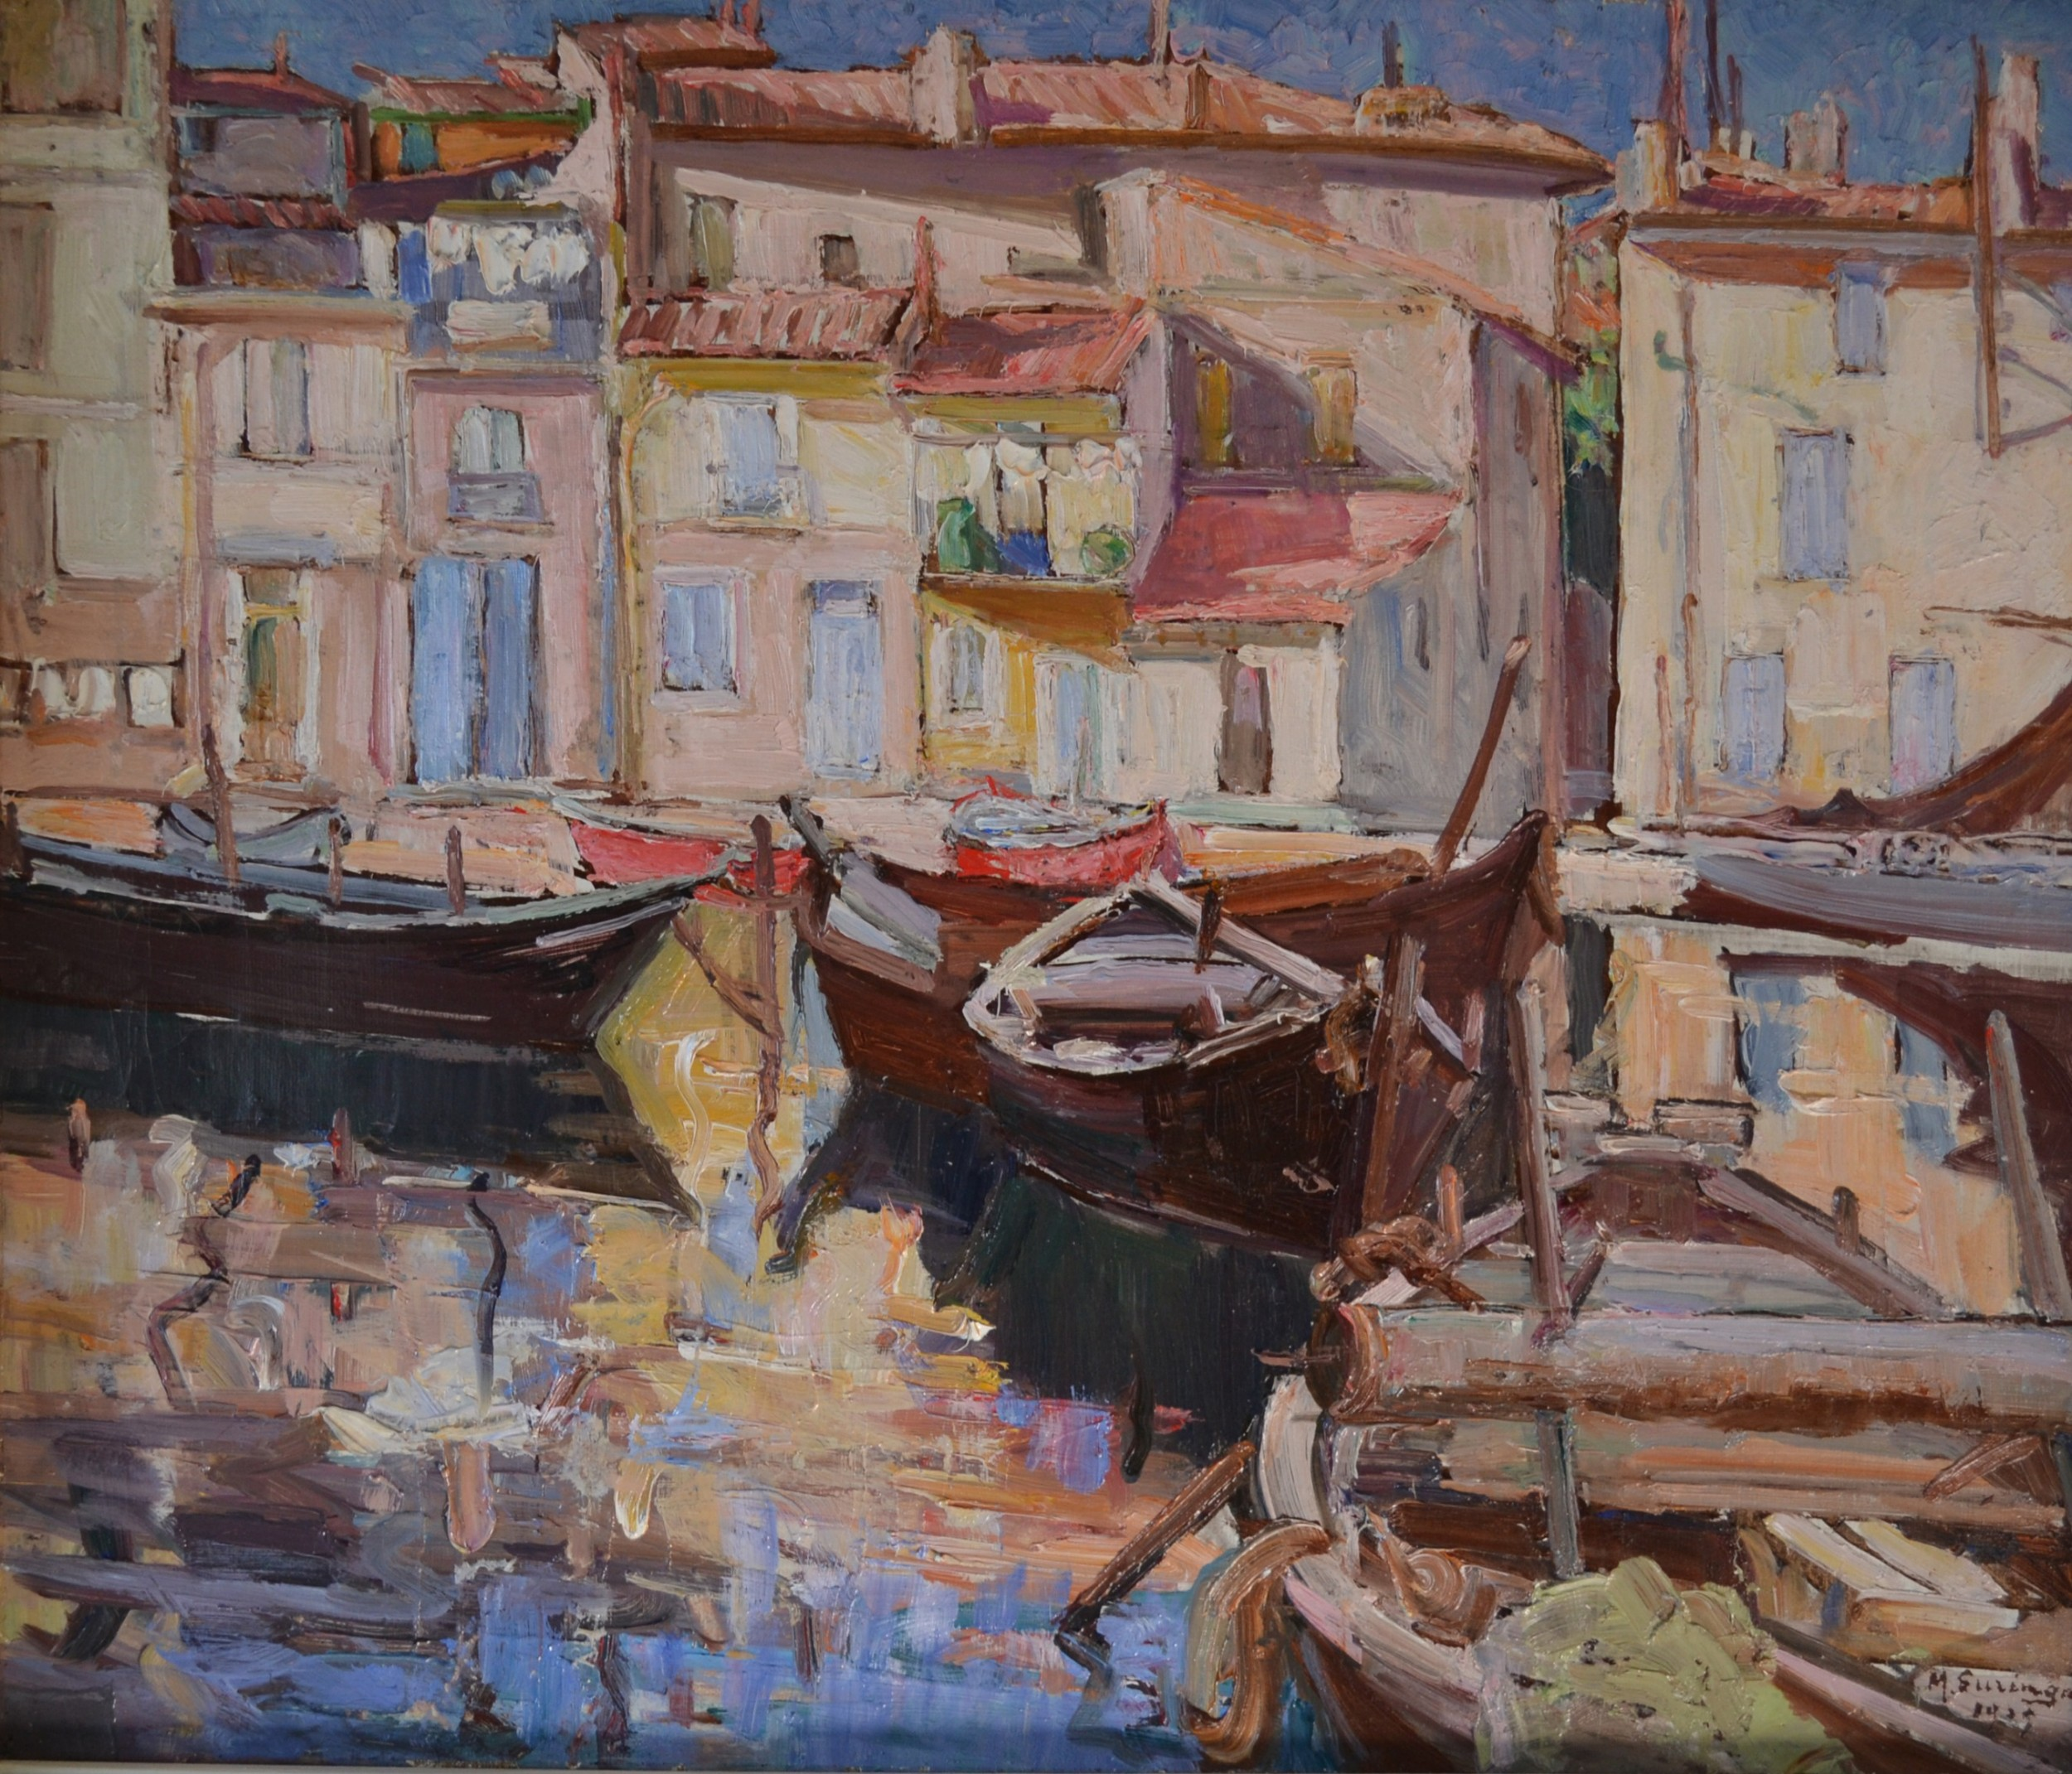 cannes cte d'azur 1929 oil on canvas french impressionist m suringar french